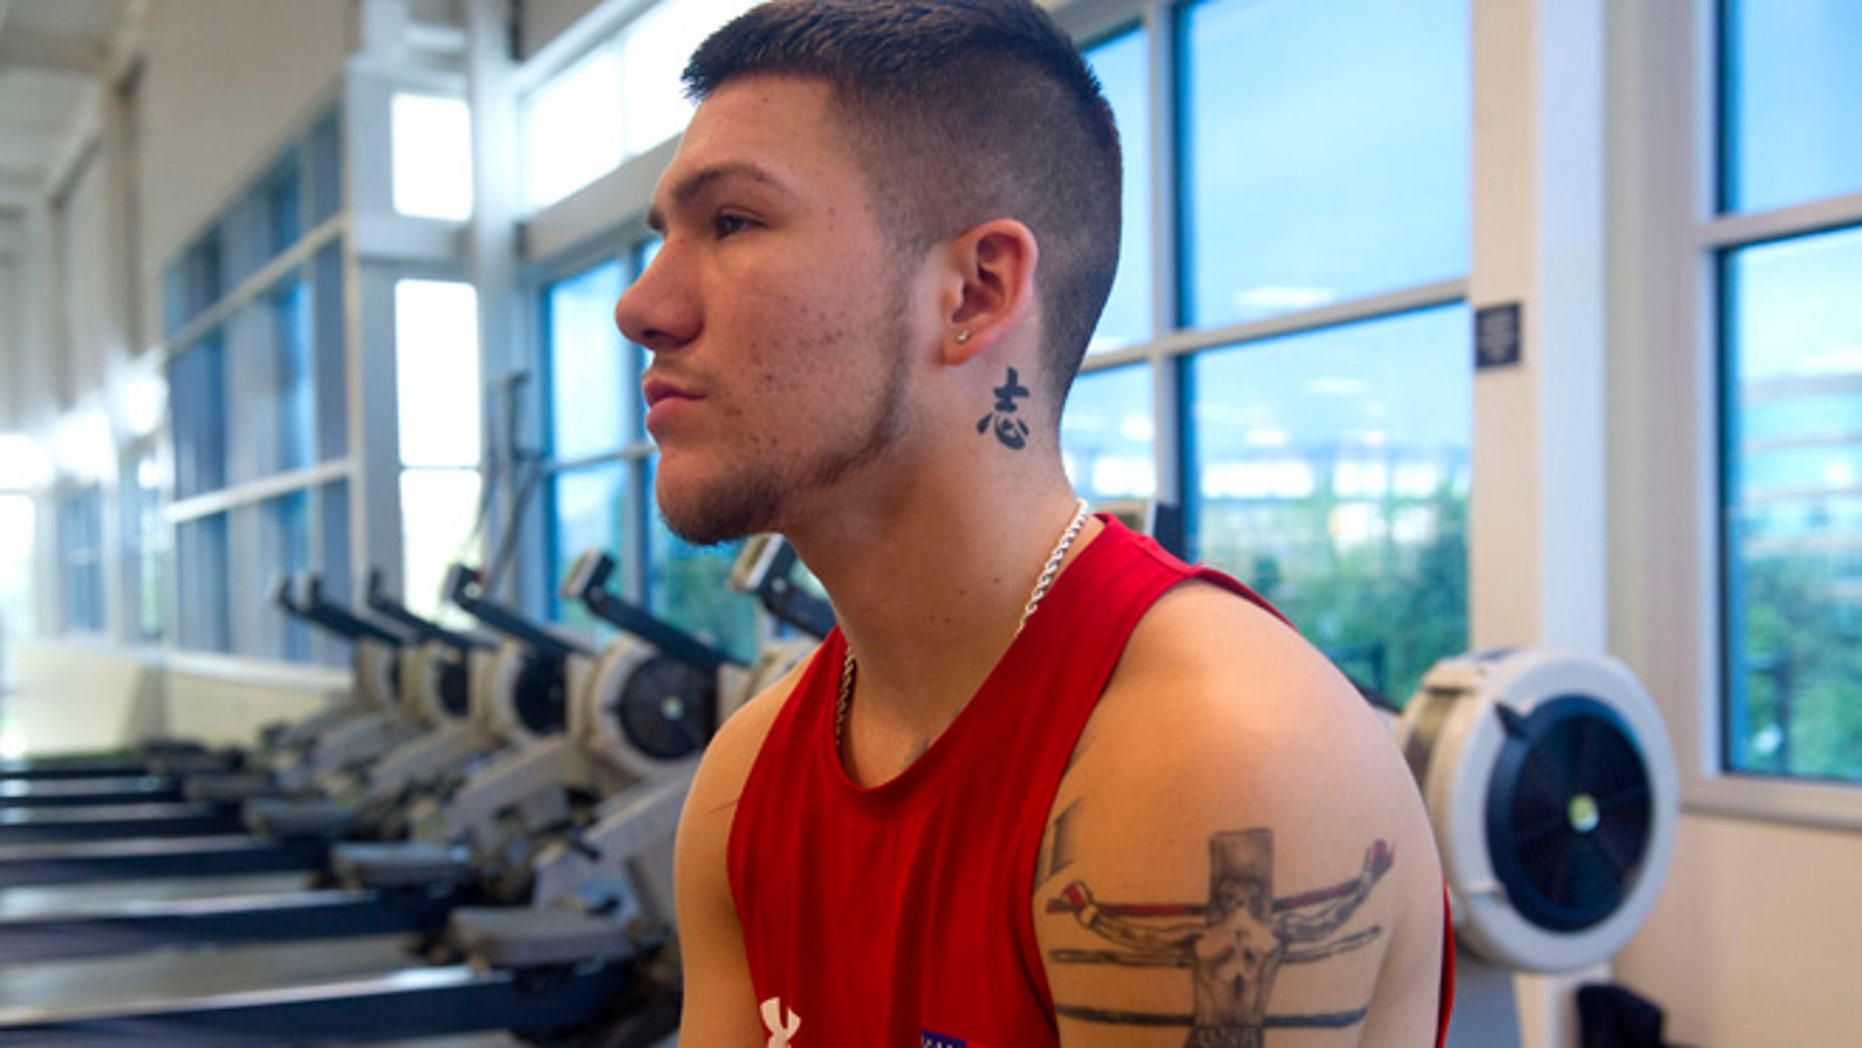 Team USA boxer, Nico Hernandez, rests after finishing his workout at the Ted Stevens Sports Services Center, part of the US Olympic Training Center in Colorado Springs, Colorado, May 25, 2016.US athletes were training in preparation for the upcoming Olympics in Rio de Janeiro, Brazil.   / AFP / Jason Connolly        (Photo credit should read JASON CONNOLLY/AFP/Getty Images)